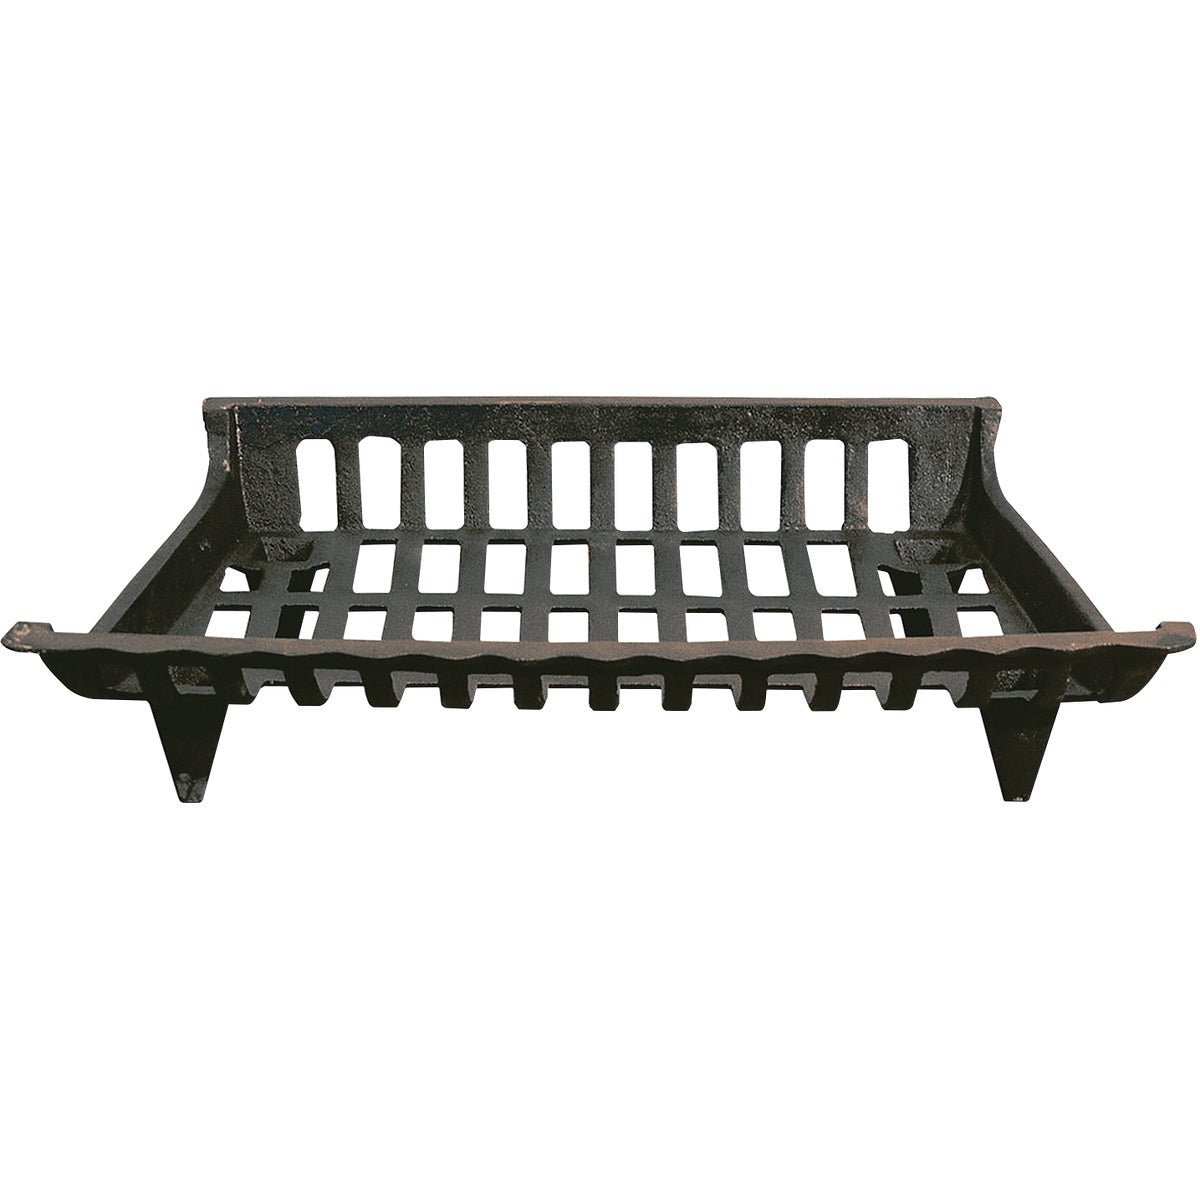 "23"" CAST IRON GRATE - 434783 by Do it Best"